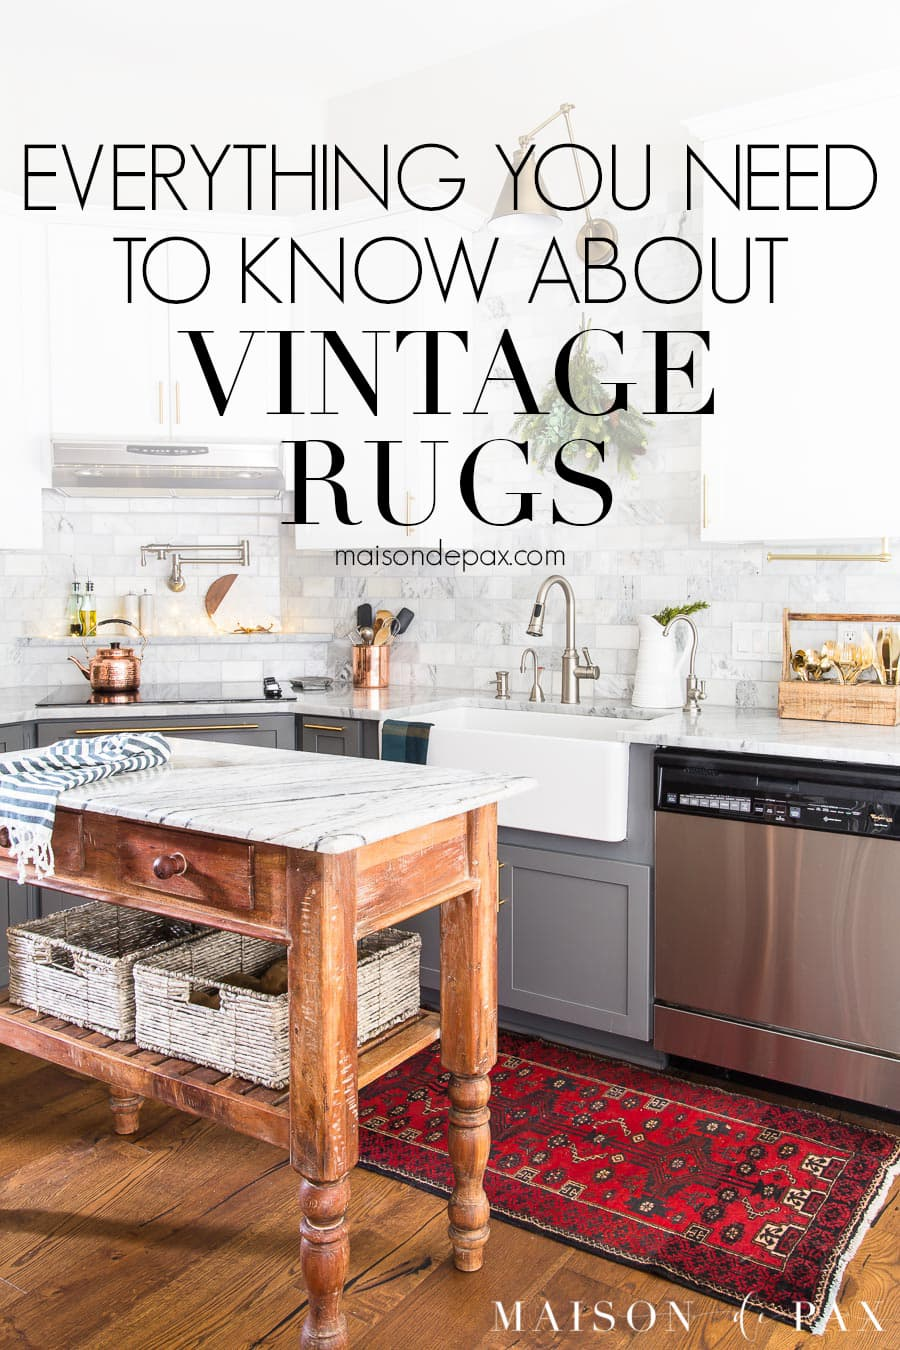 kitchen with red vintage runner and overlay: everything you need to know about vintage rugs | Maison de Pax